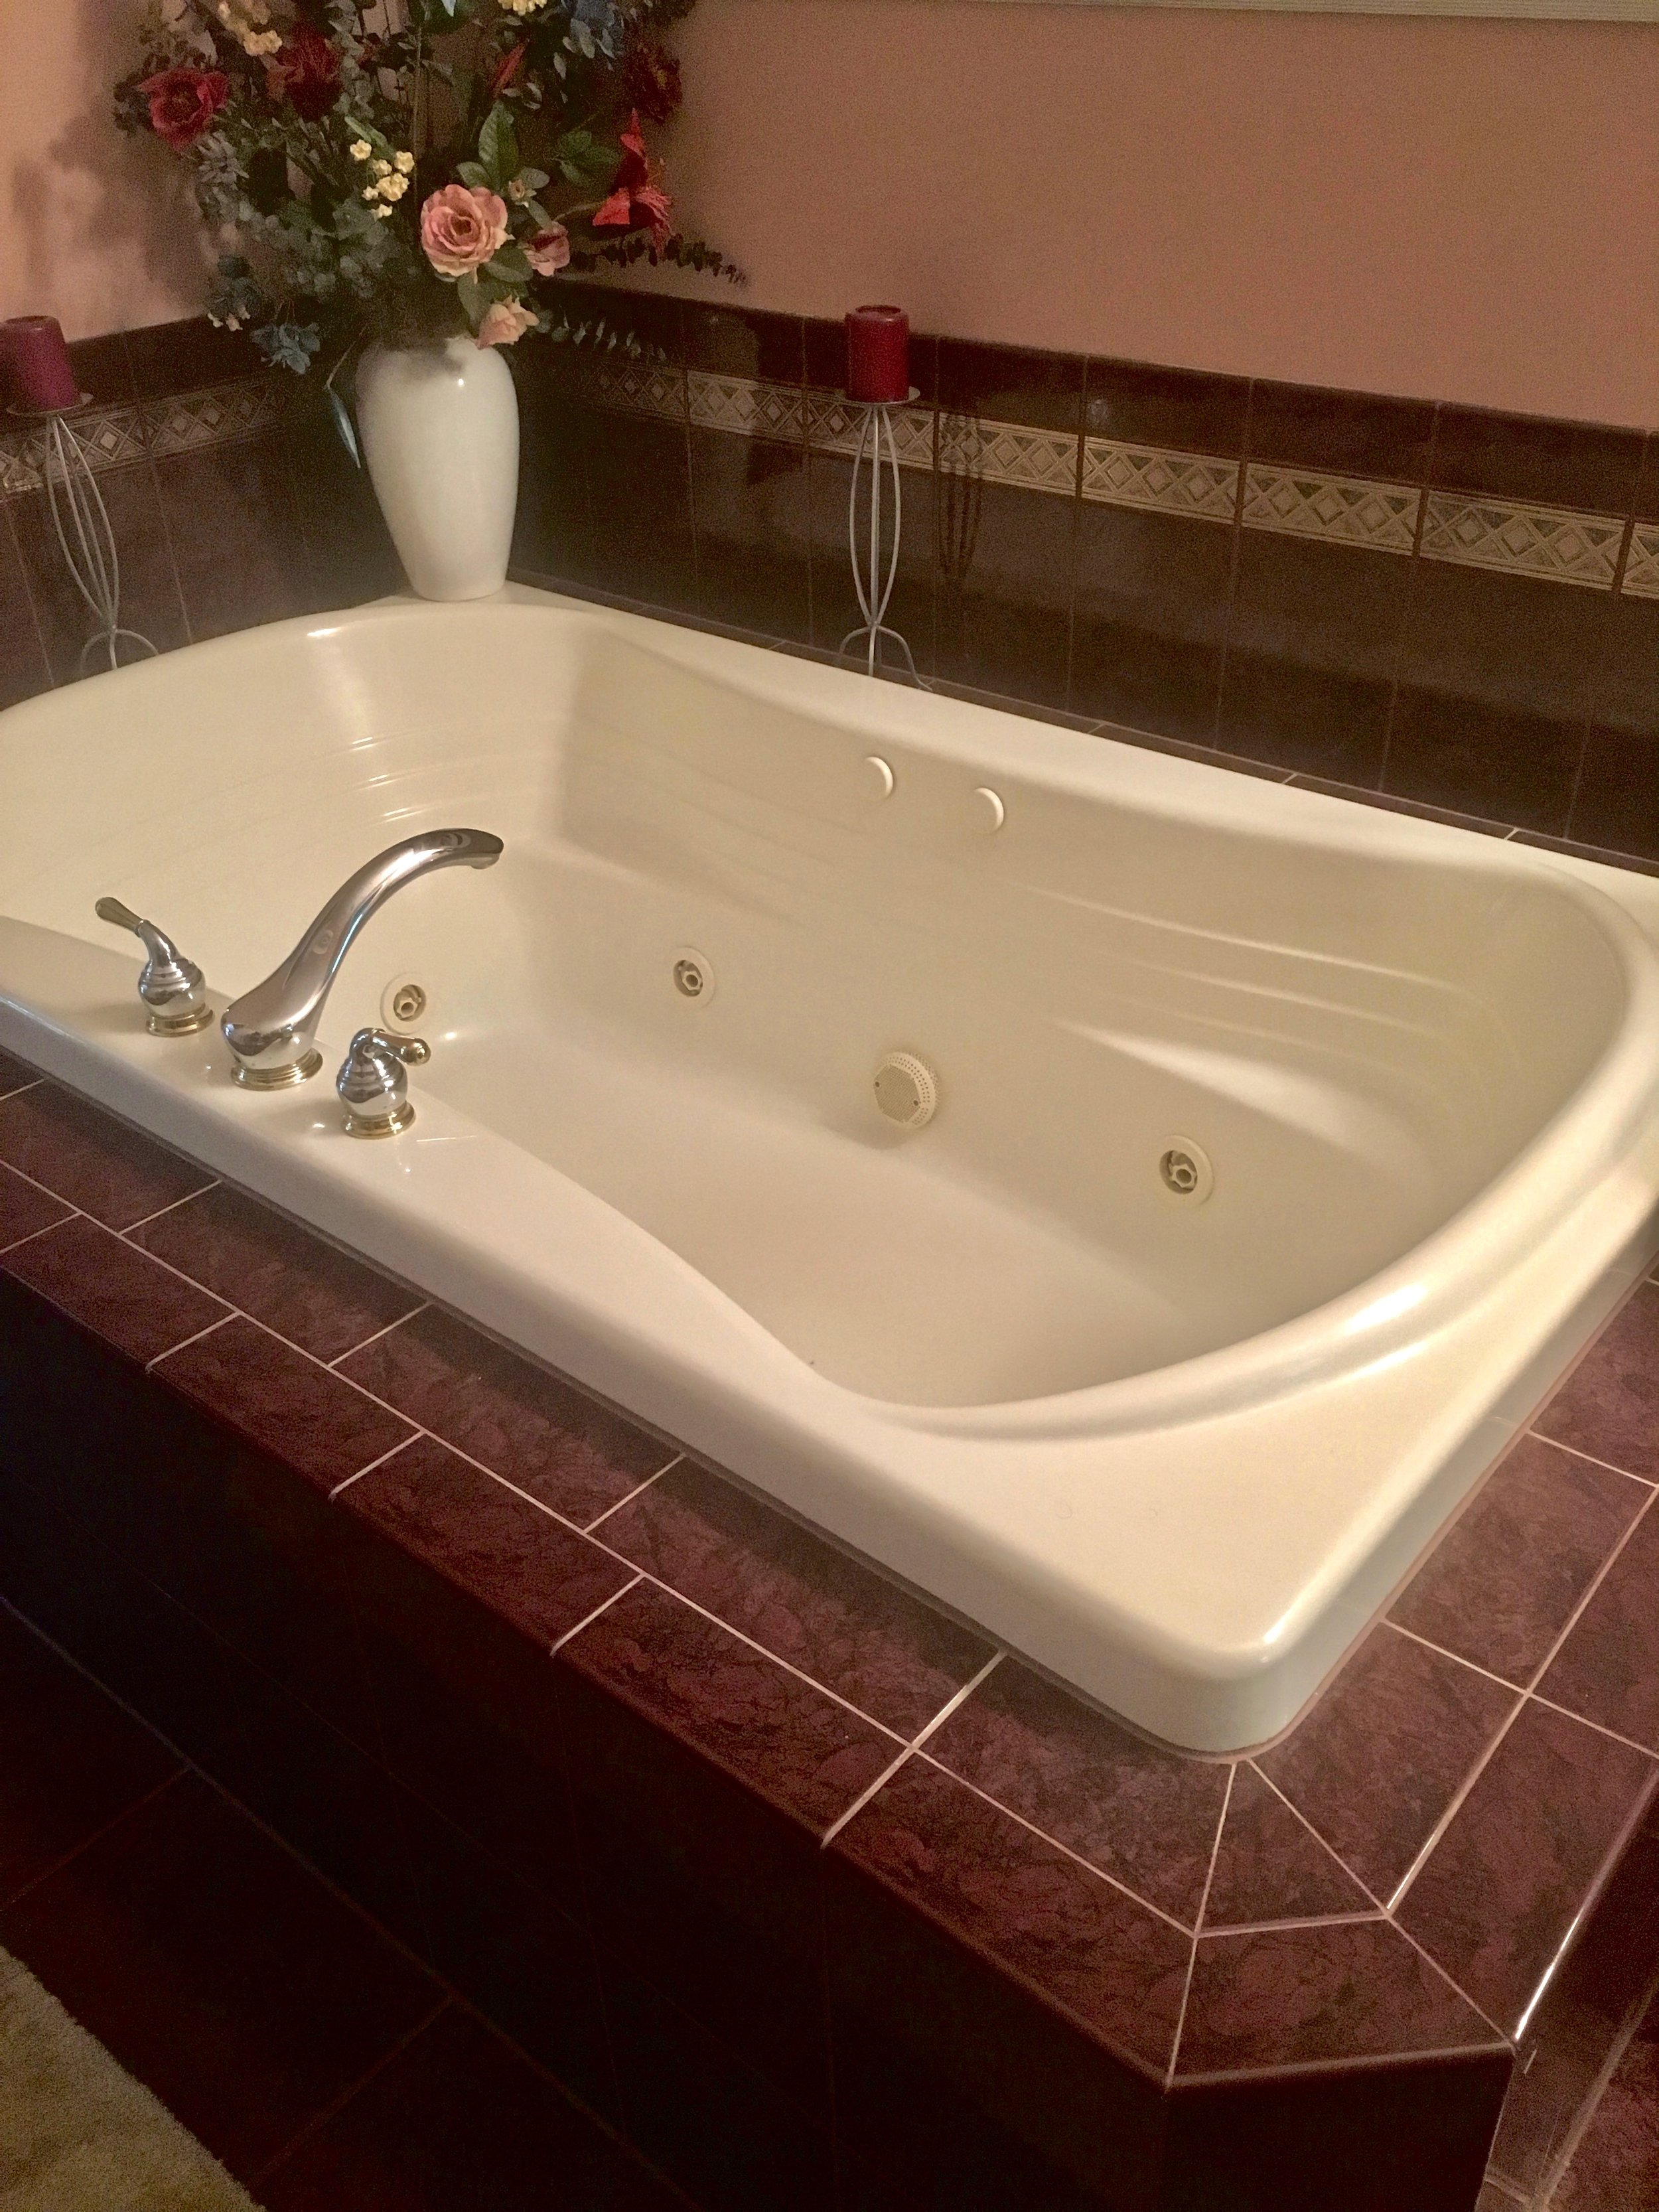 Looking to Remove Your Master Bathroom Oversized Whirlpool Tub & Replace it With a Large Walk in Shower? Take a Look what we did here! St. Charles & Naperville Outdated Bathrooms